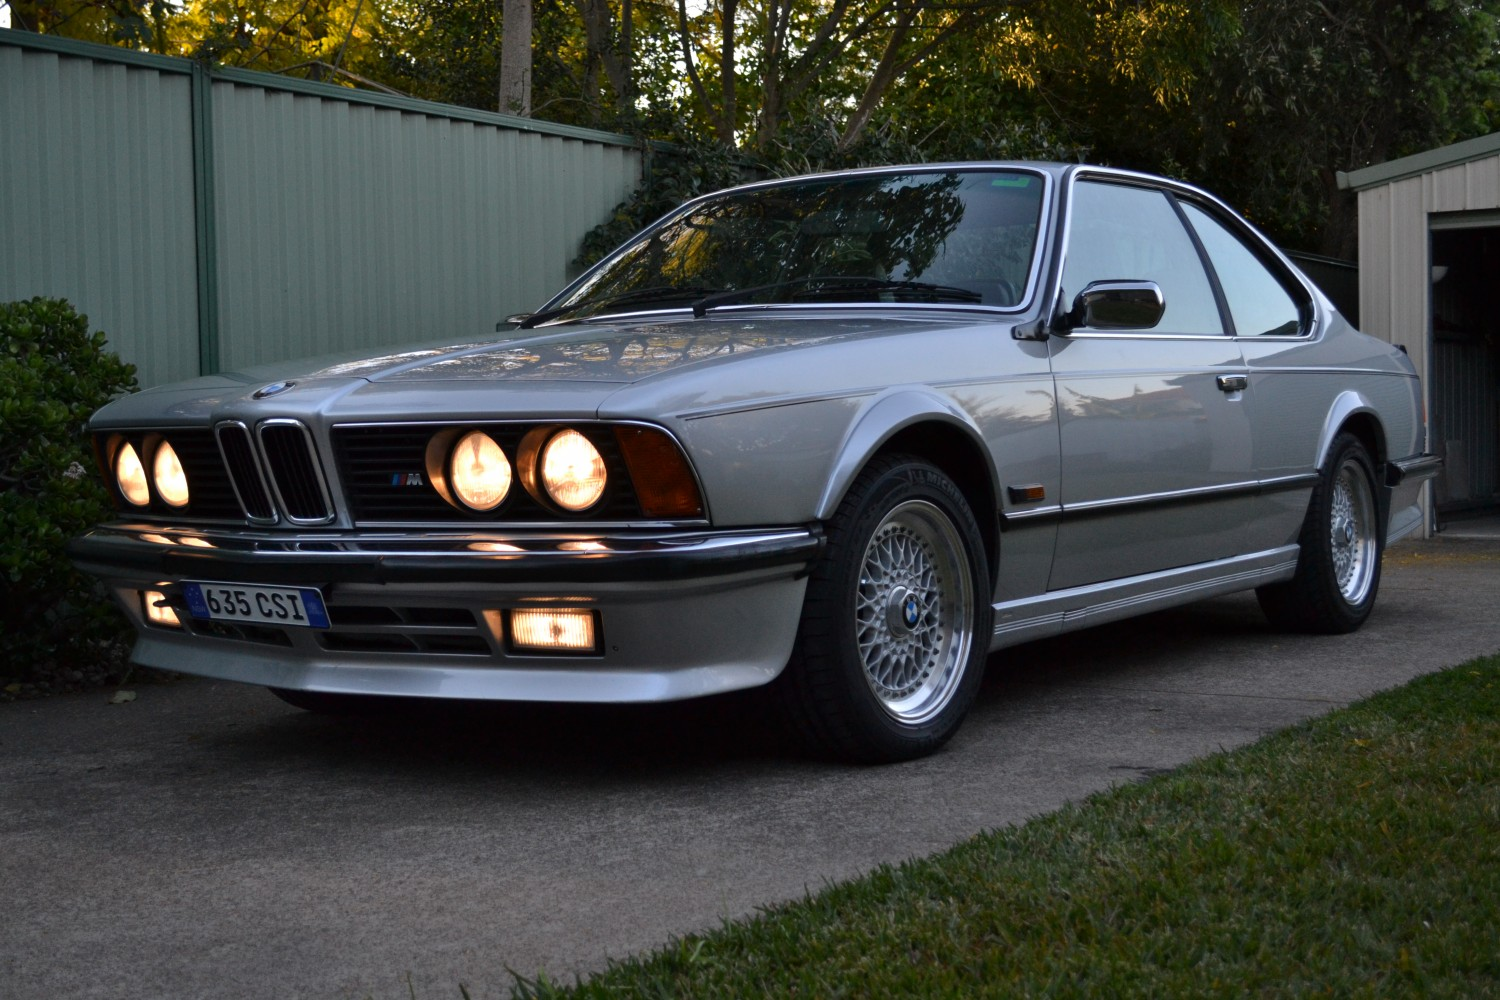 1986 BMW 635CSI with M-tech factory fitted kit